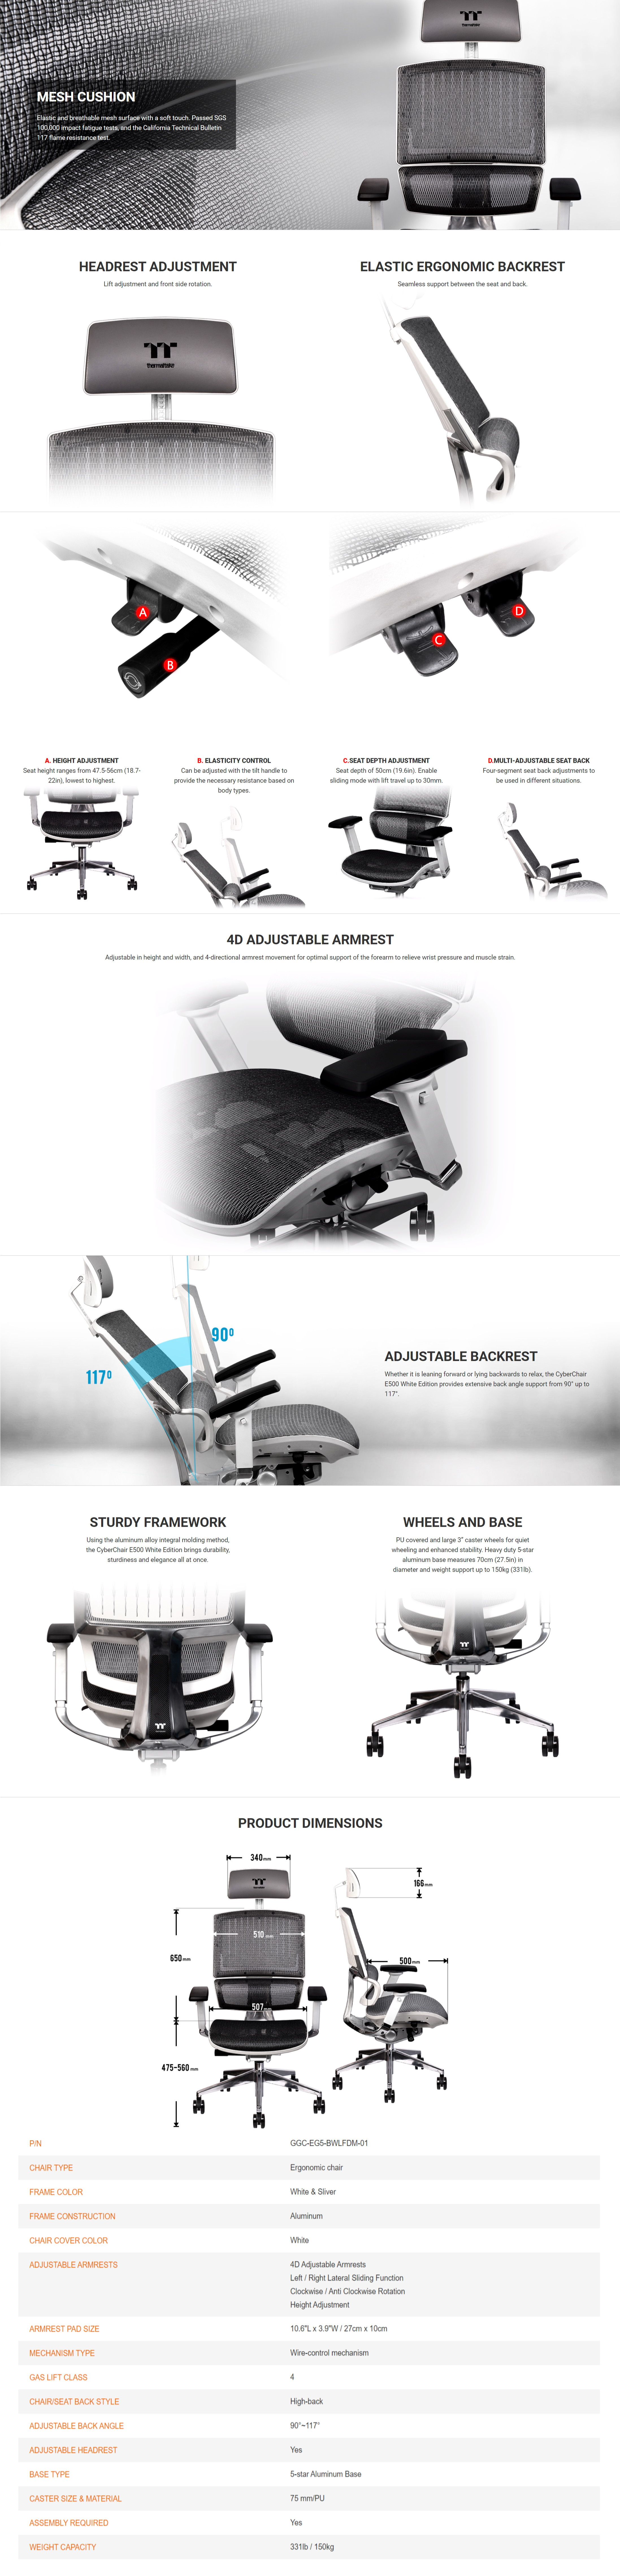 A large marketing image providing additional information about the product Thermaltake E500 CyberChair Ergonomic Gaming Chair White Edition - Additional alt info not provided